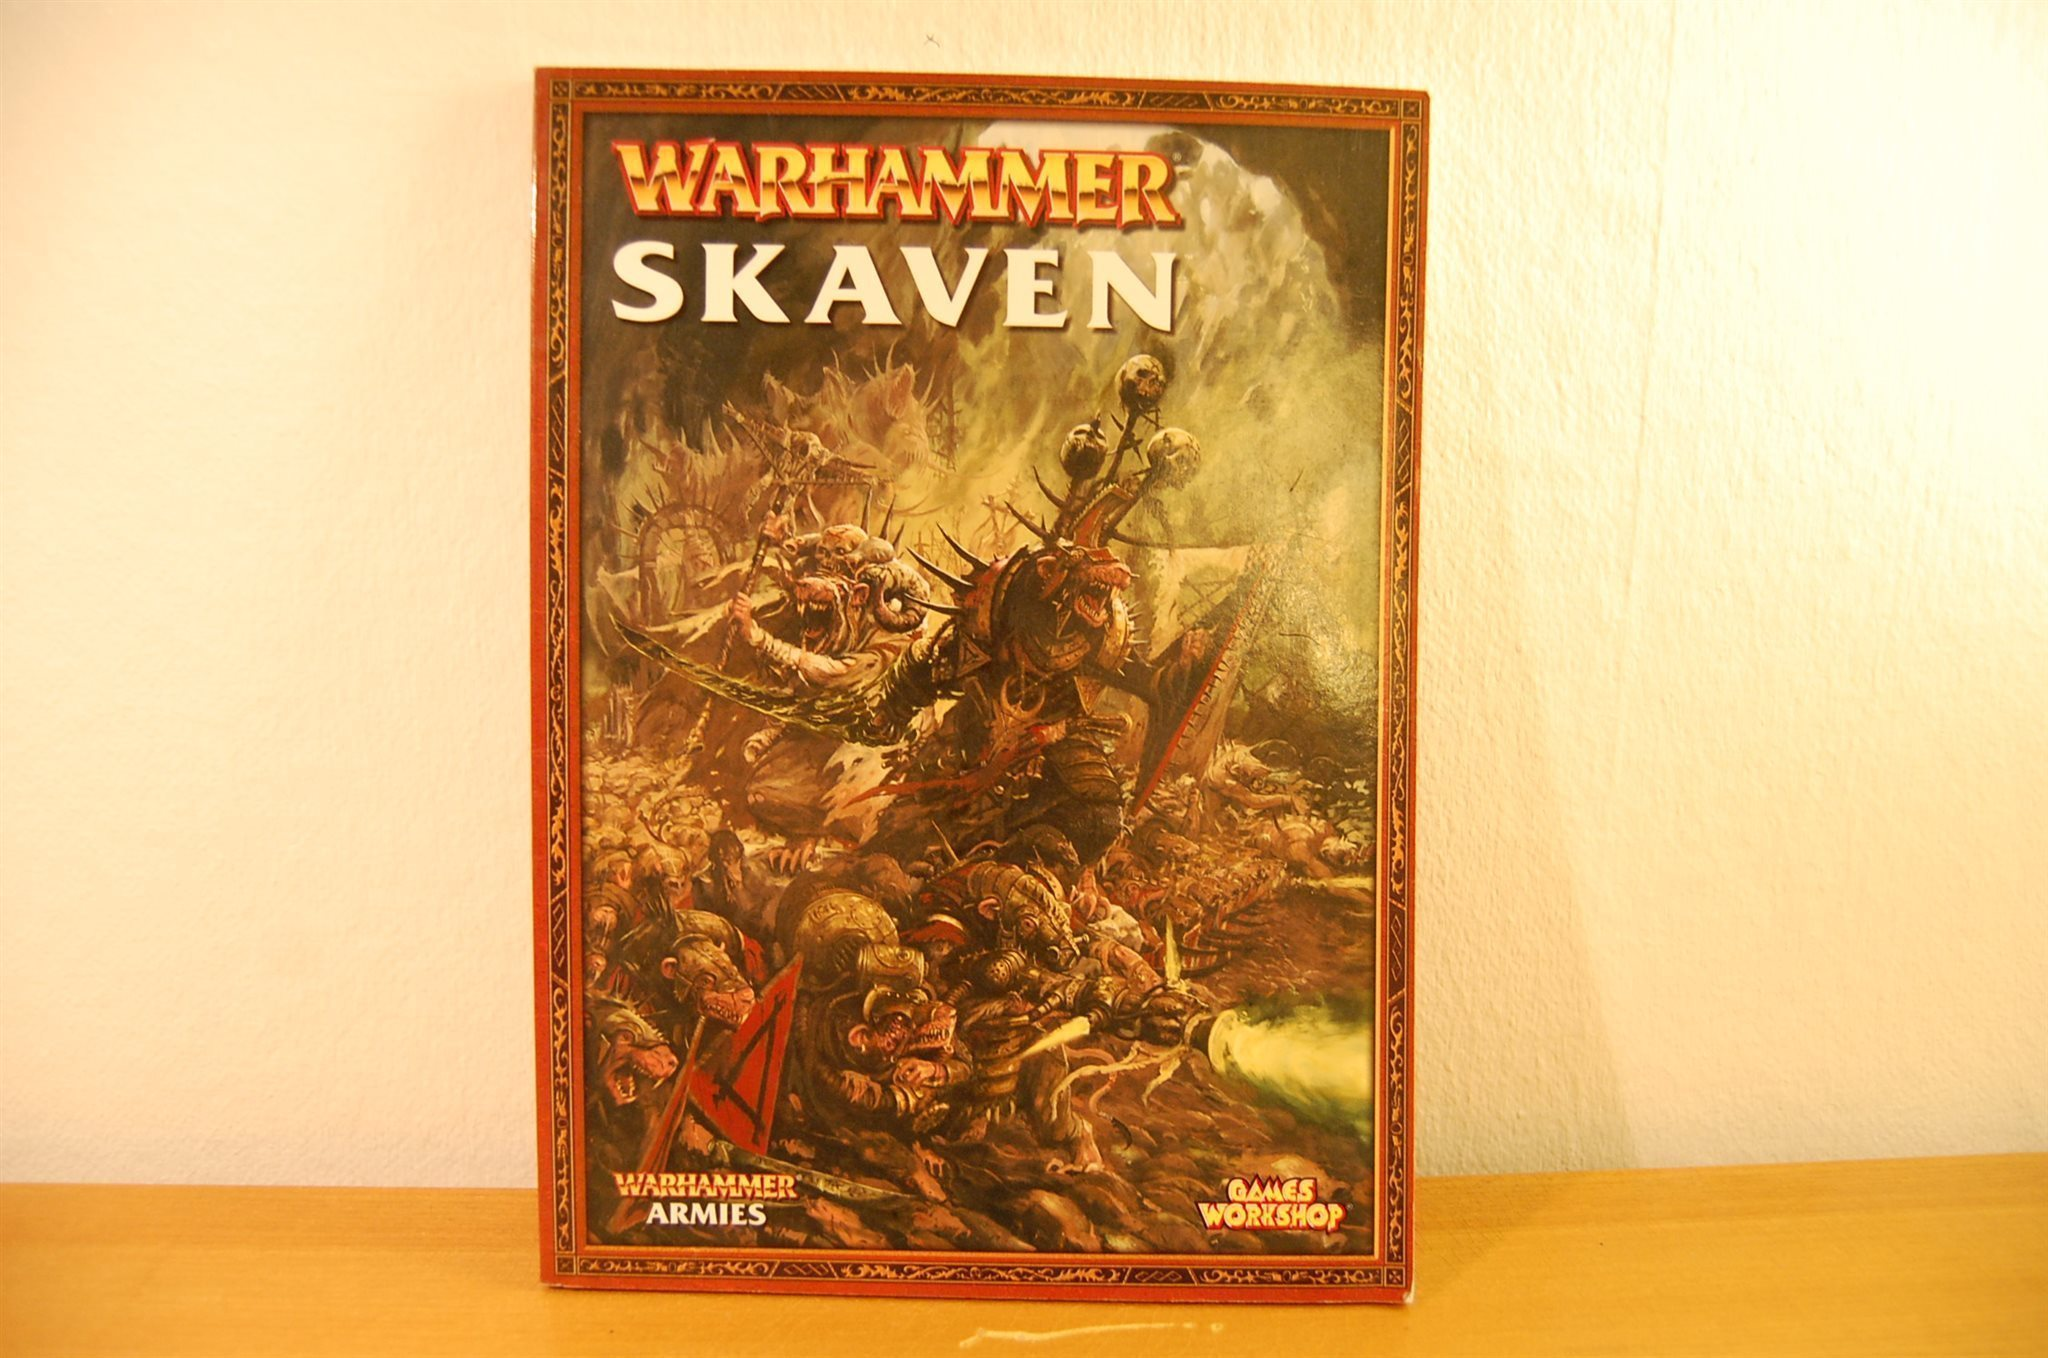 Army edition 8th skaven book